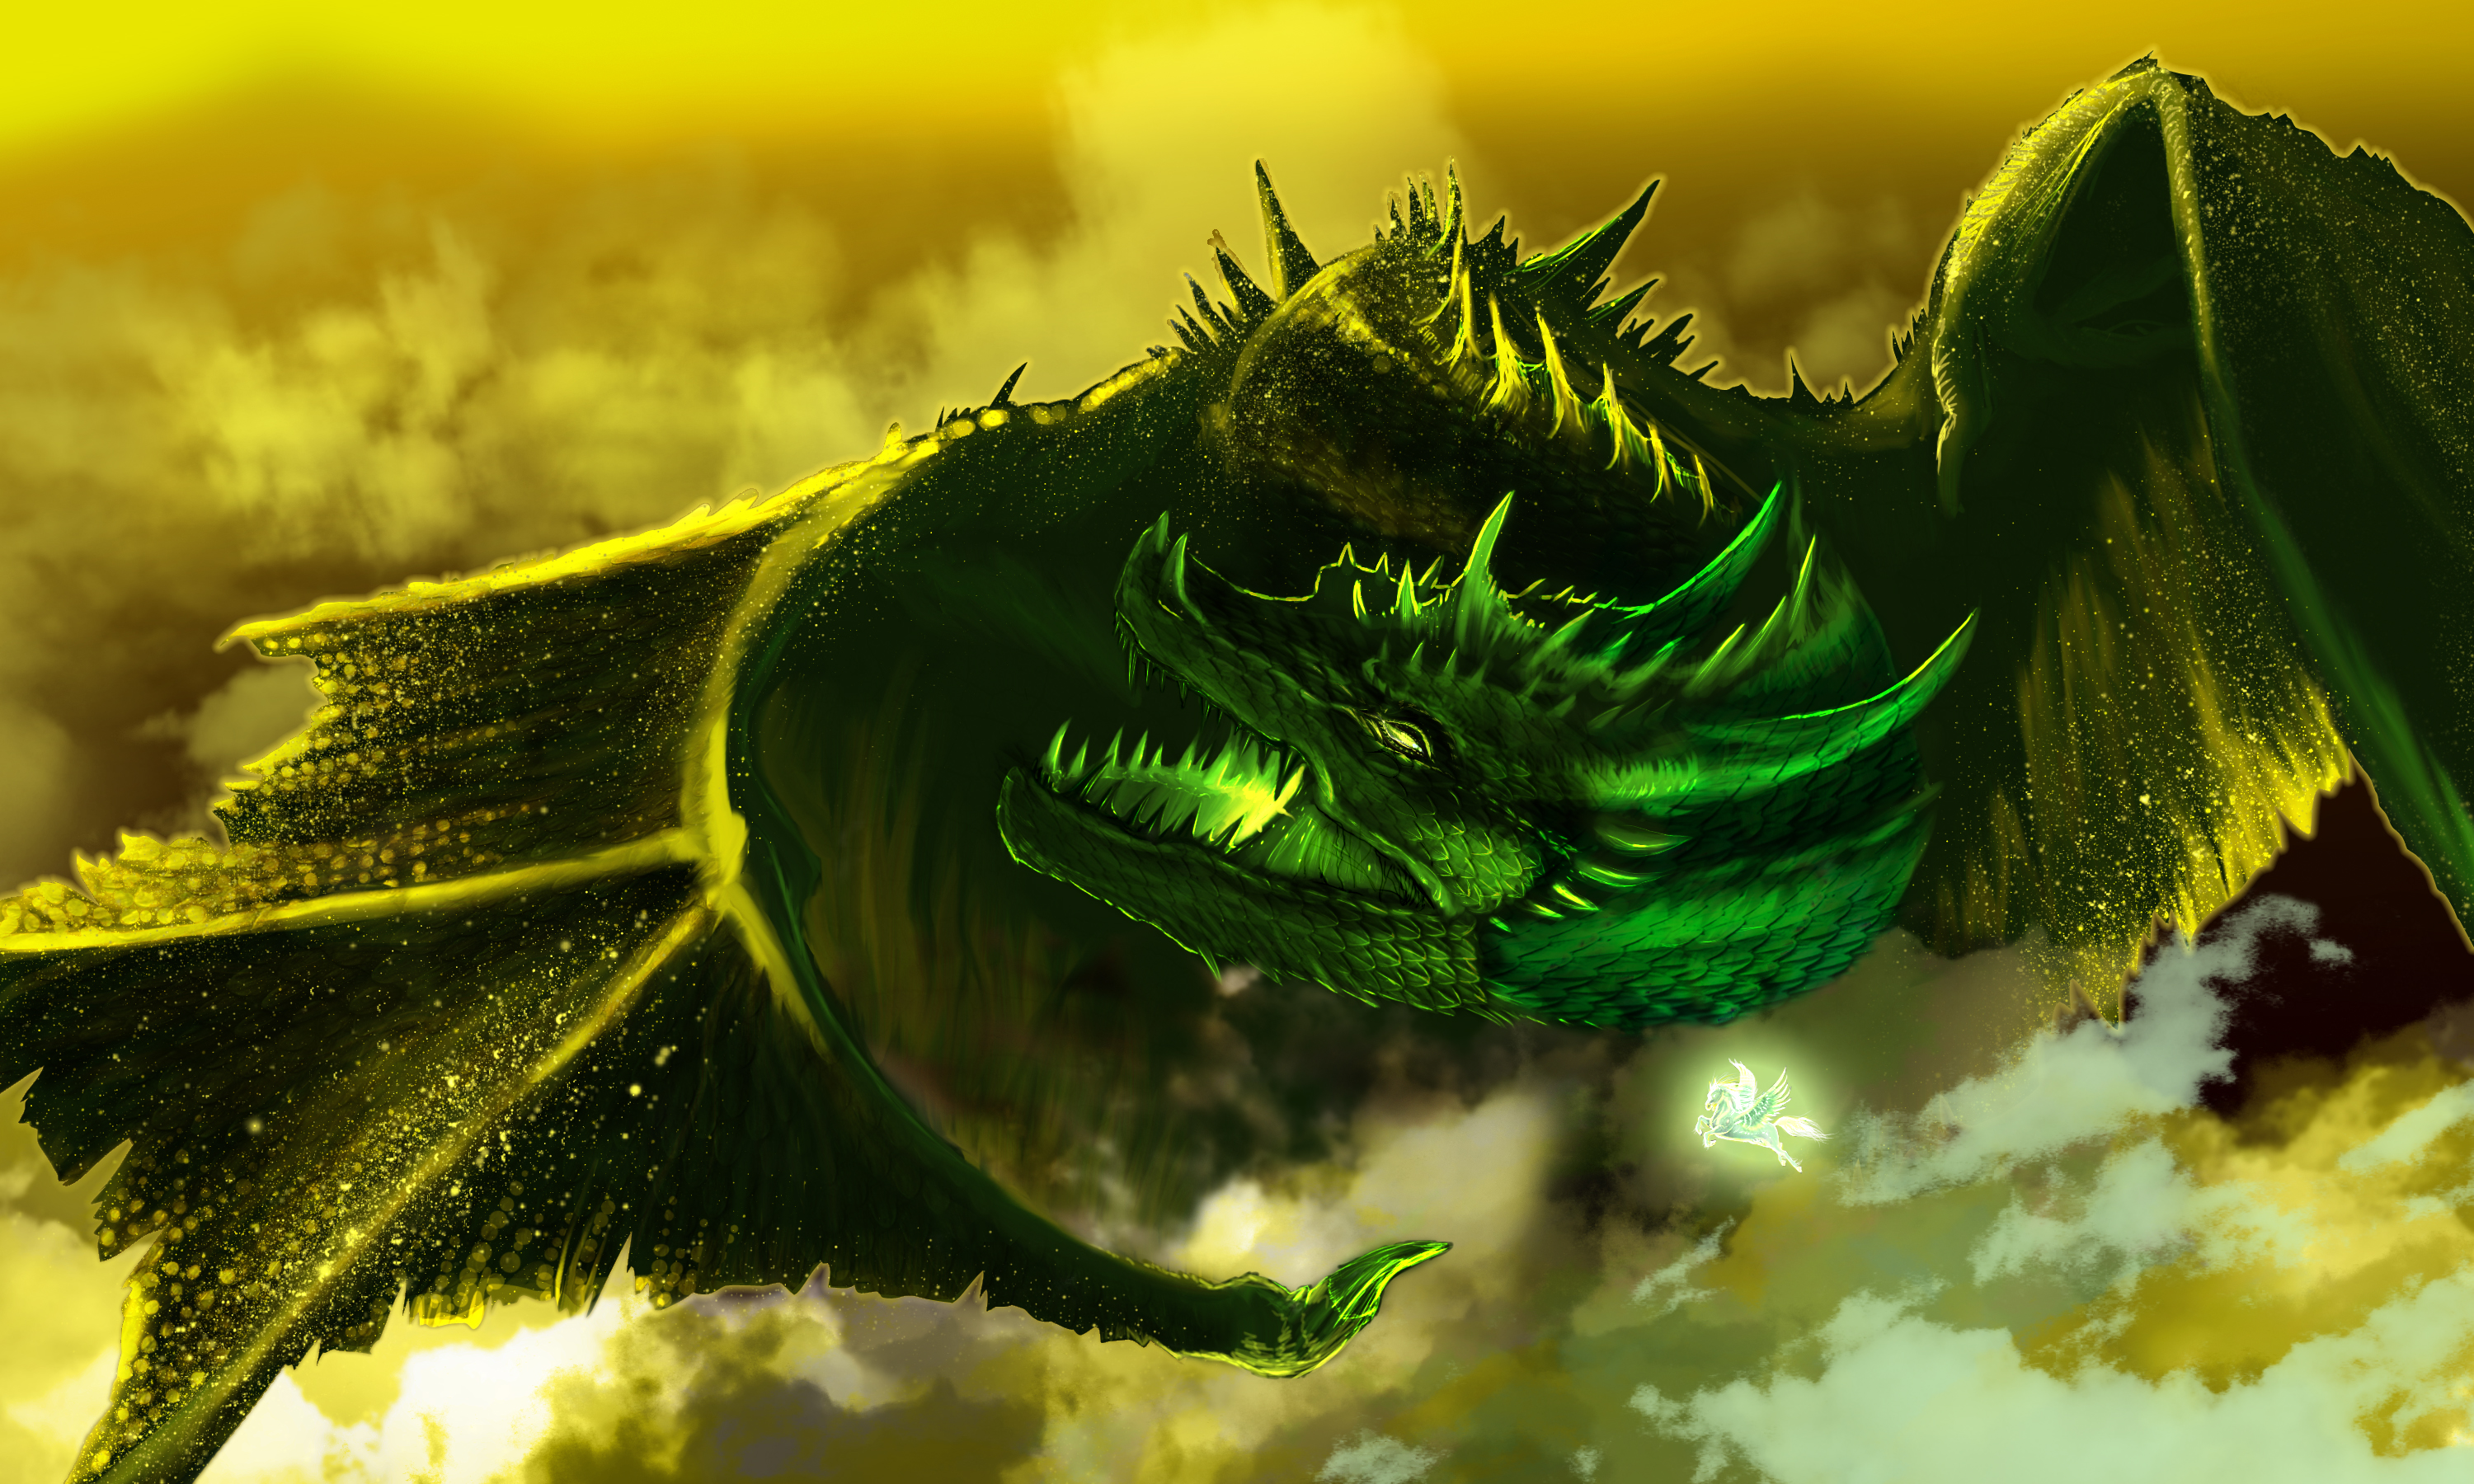 Dragon hd wallpaper background image 3000x1800 id - Dragon wallpaper hd for pc ...